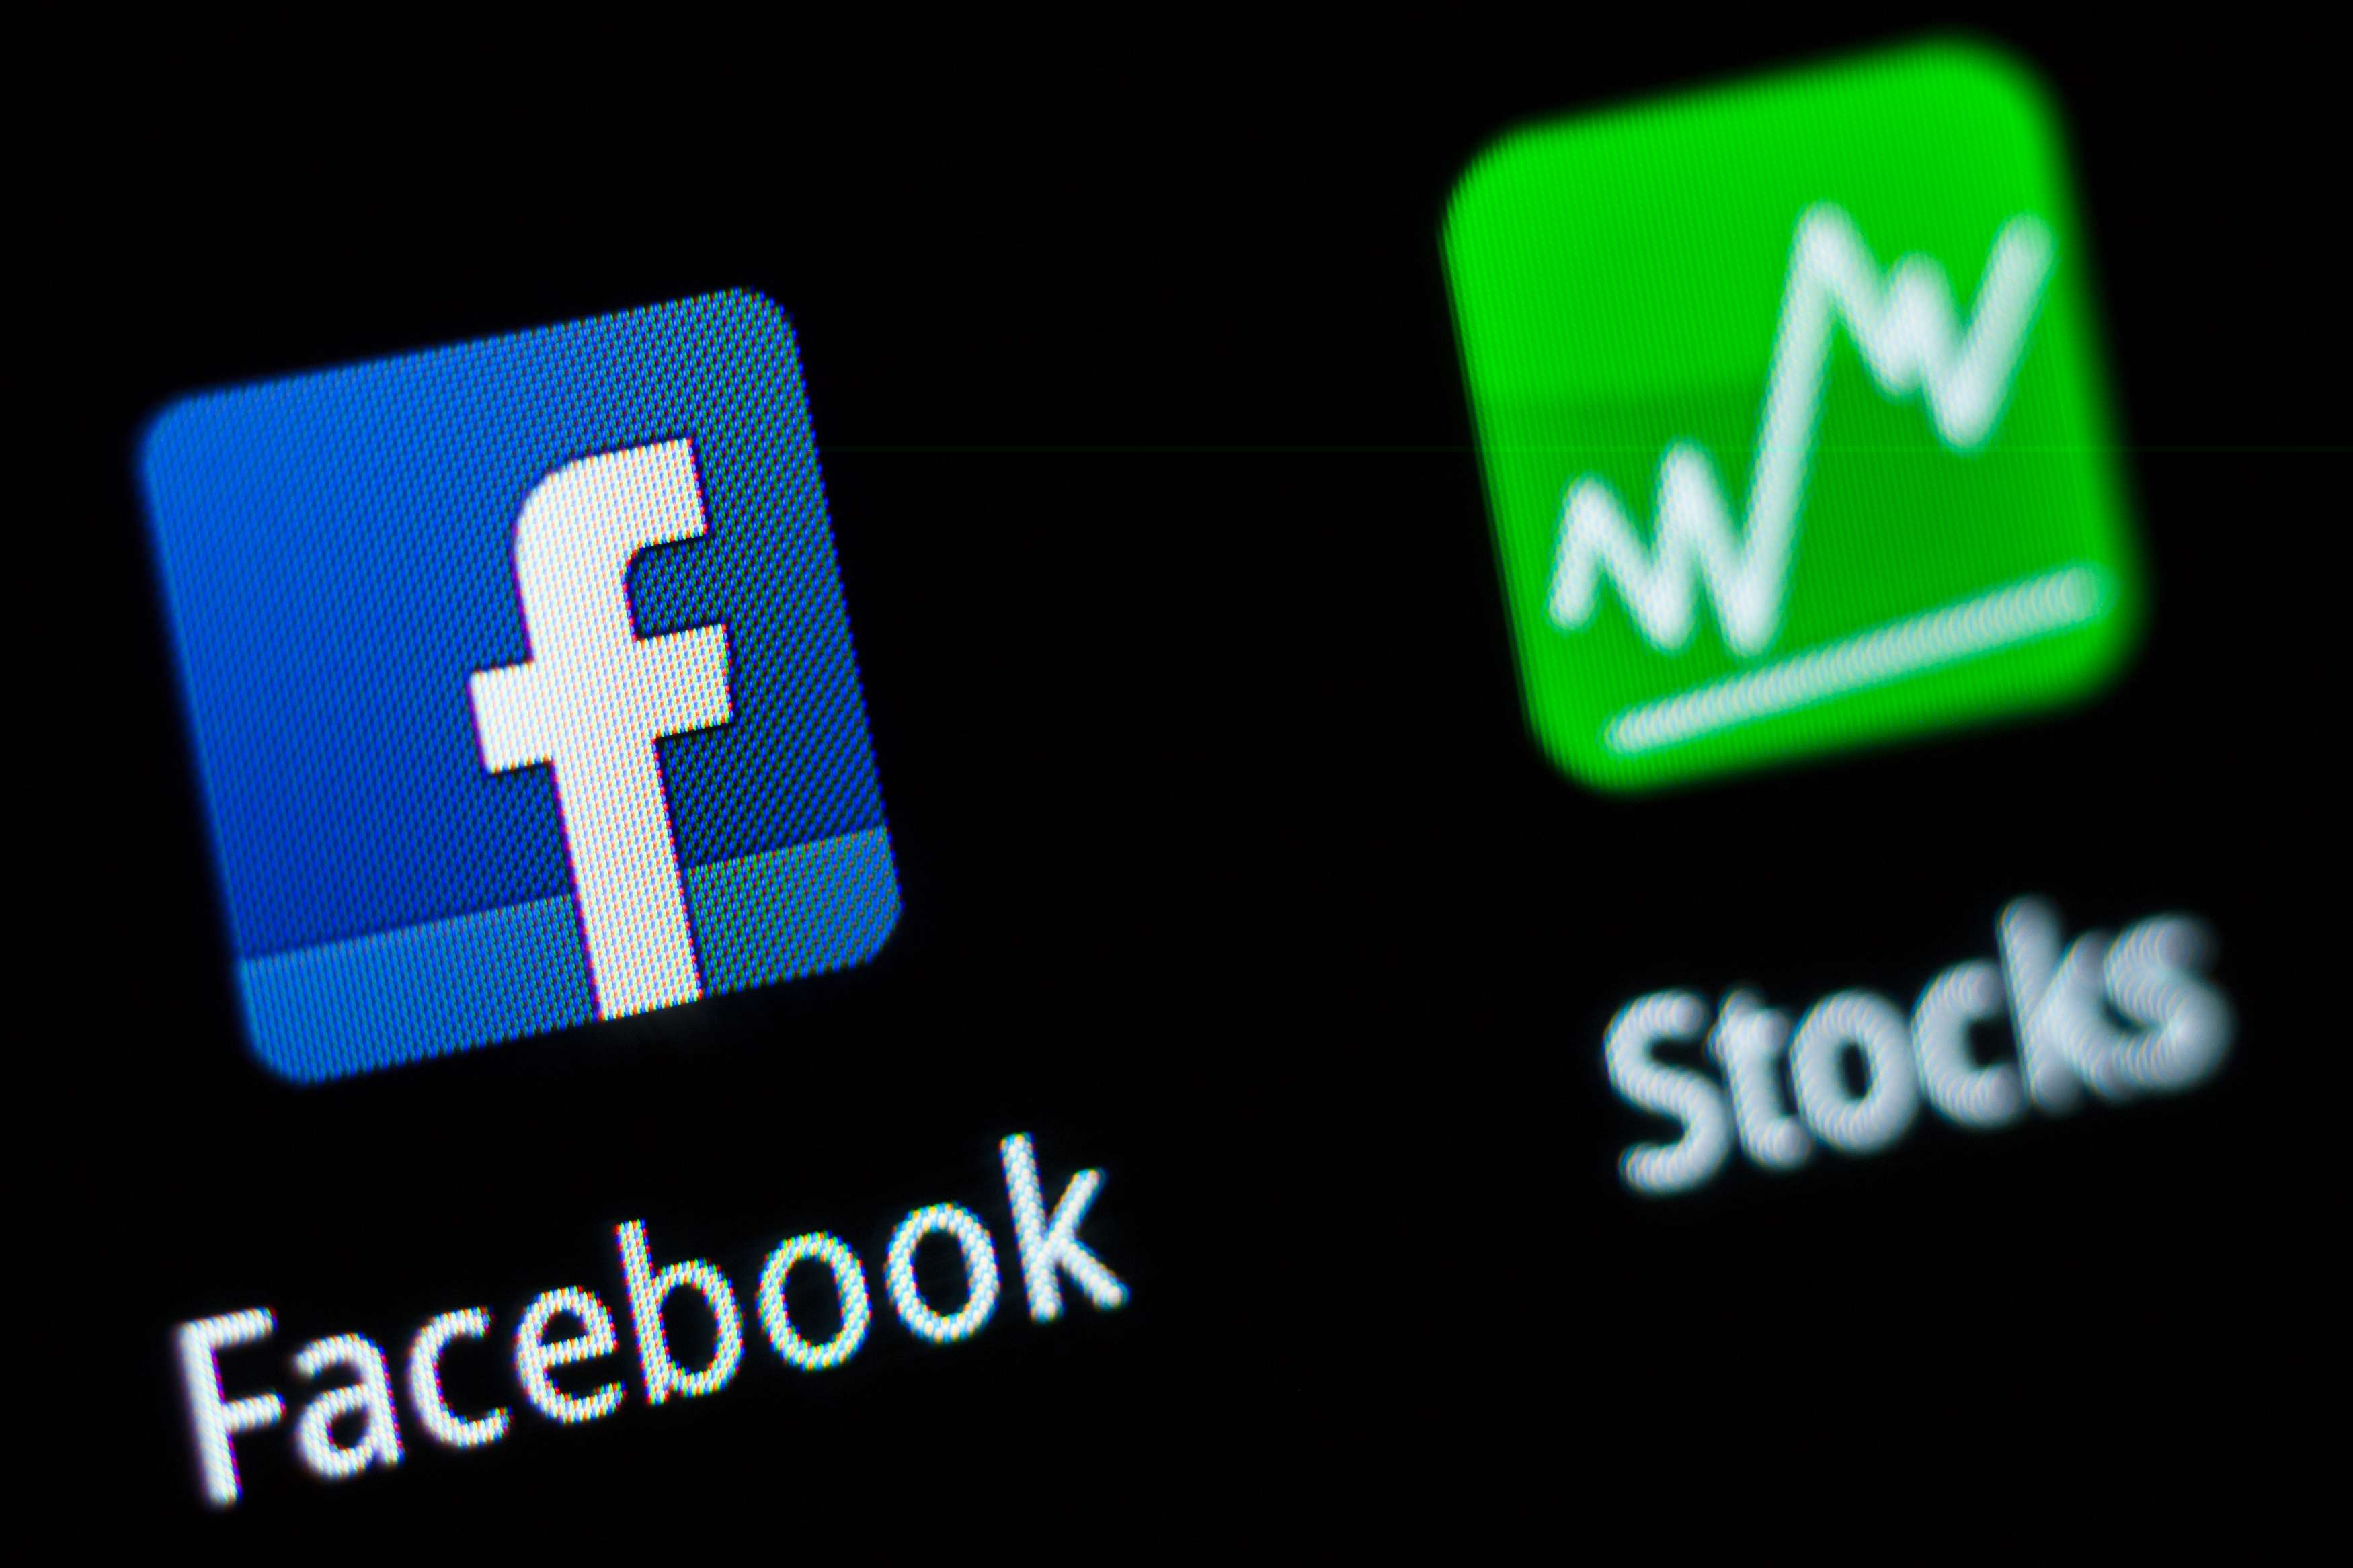 Facebook stock hits all-time highs on strong earnings